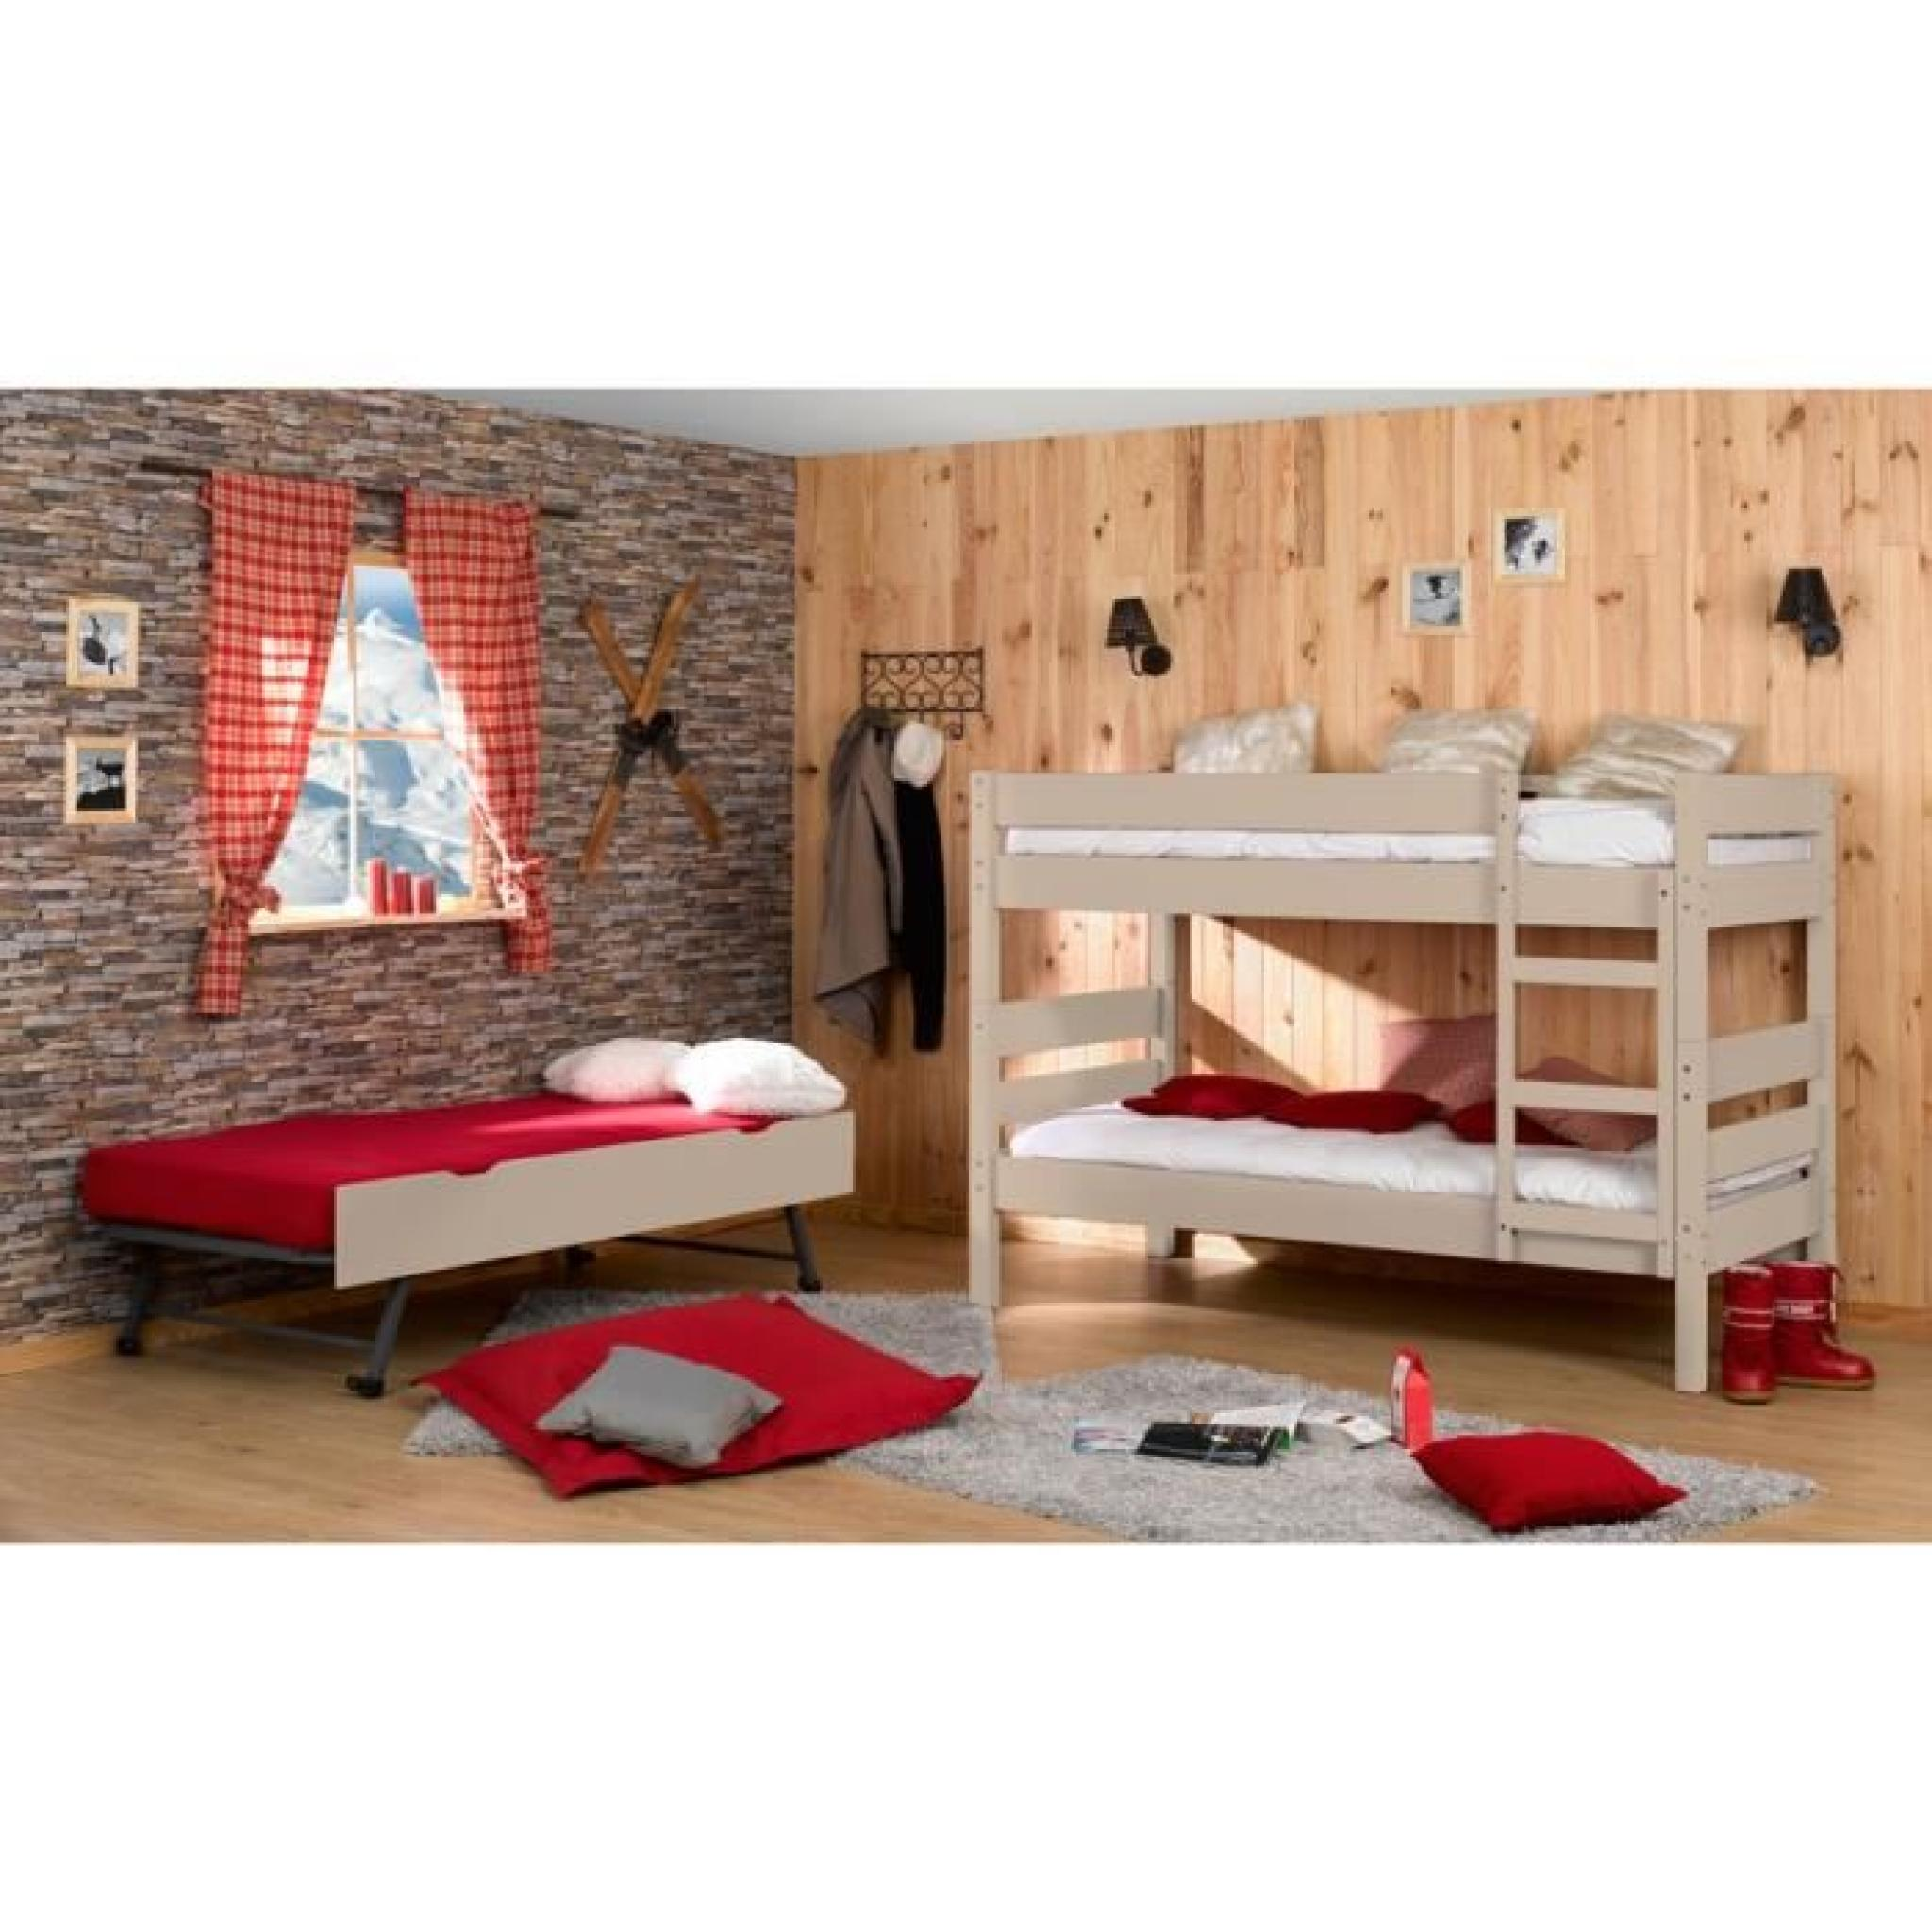 lit superpos tiroir lit 3 matelas 90x190 lin achat vente lit superpose pas. Black Bedroom Furniture Sets. Home Design Ideas